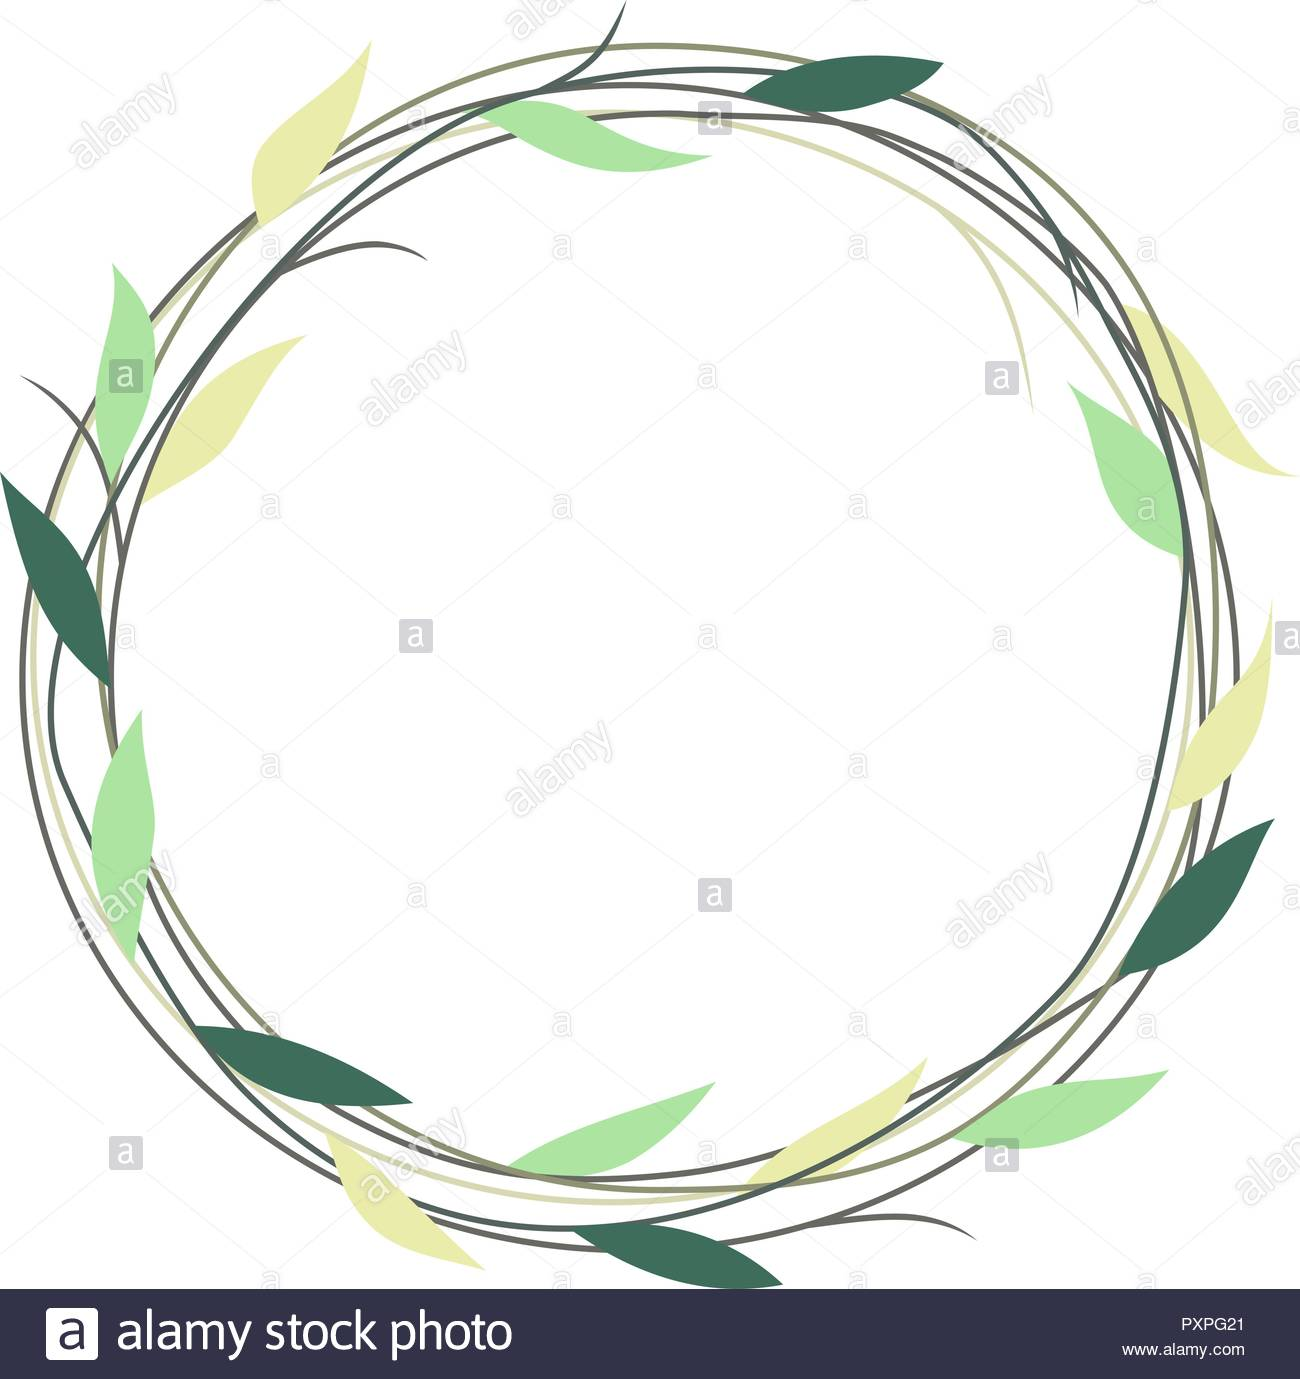 Simple wreath with green and yellow leaves, vector illustration Stock Vector